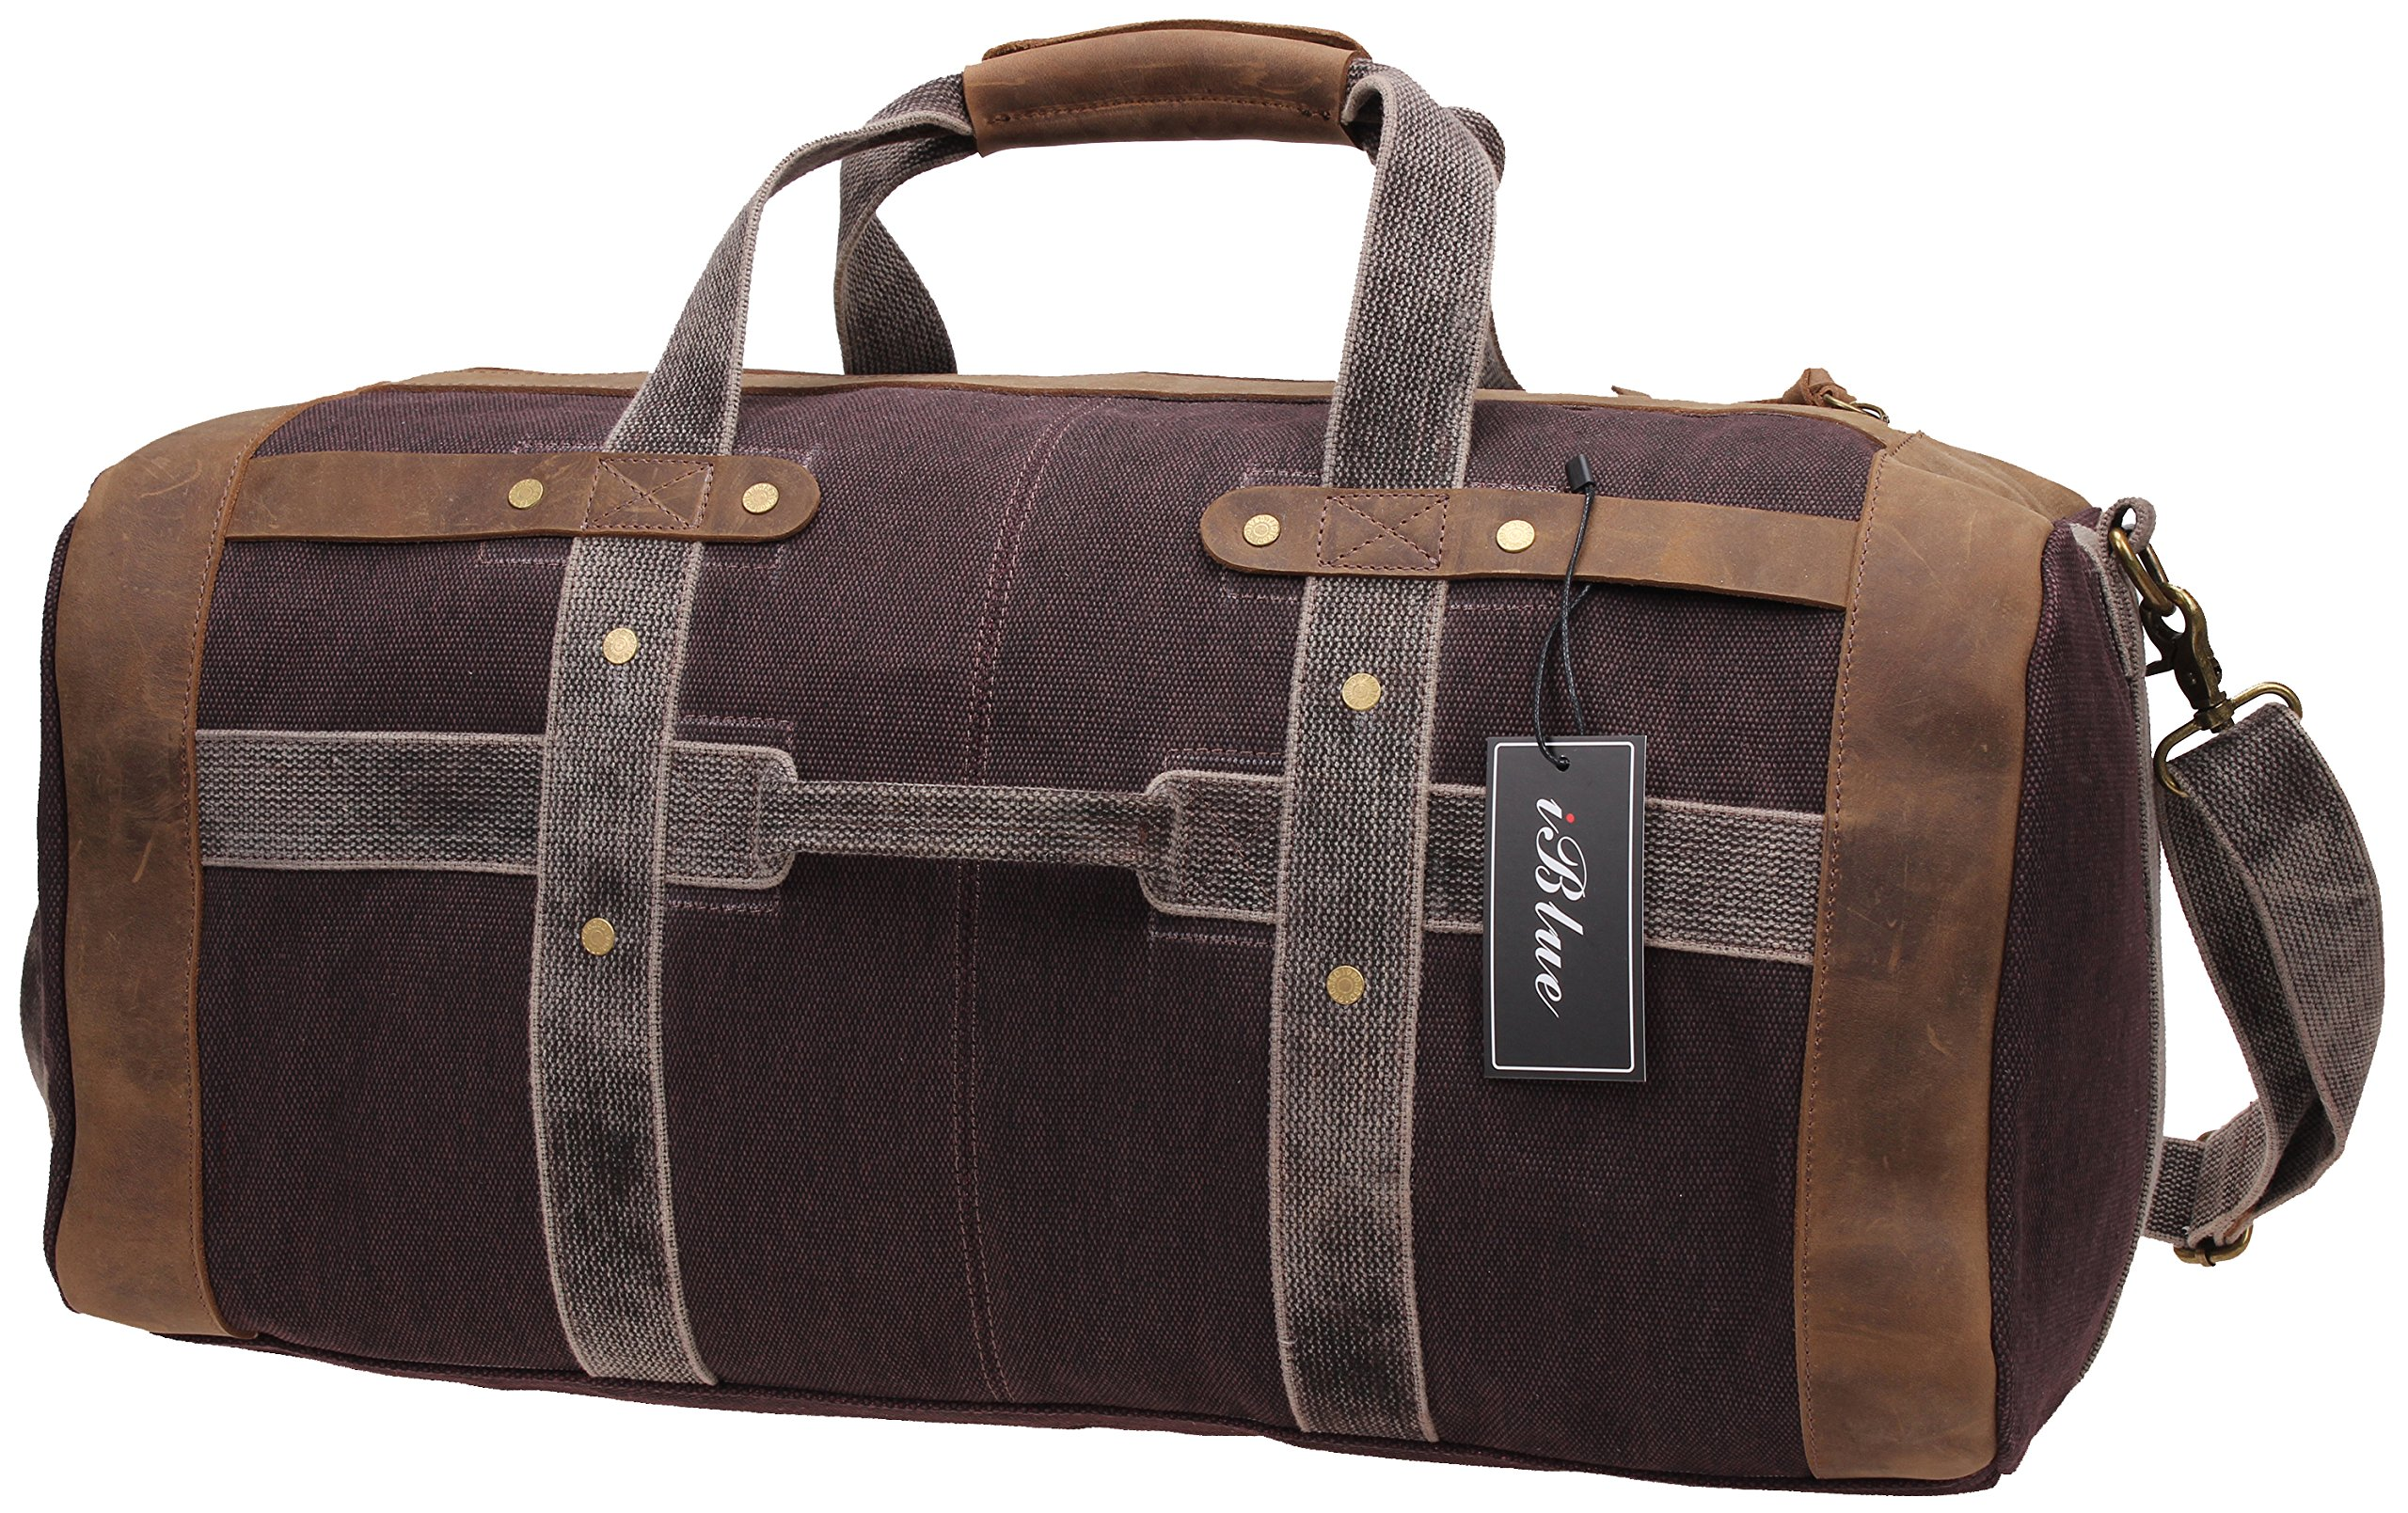 Iblue Weekend Bag Travel Duffel Bags For Men Canvas Carry On #B007(XL, coffee) by iblue (Image #1)